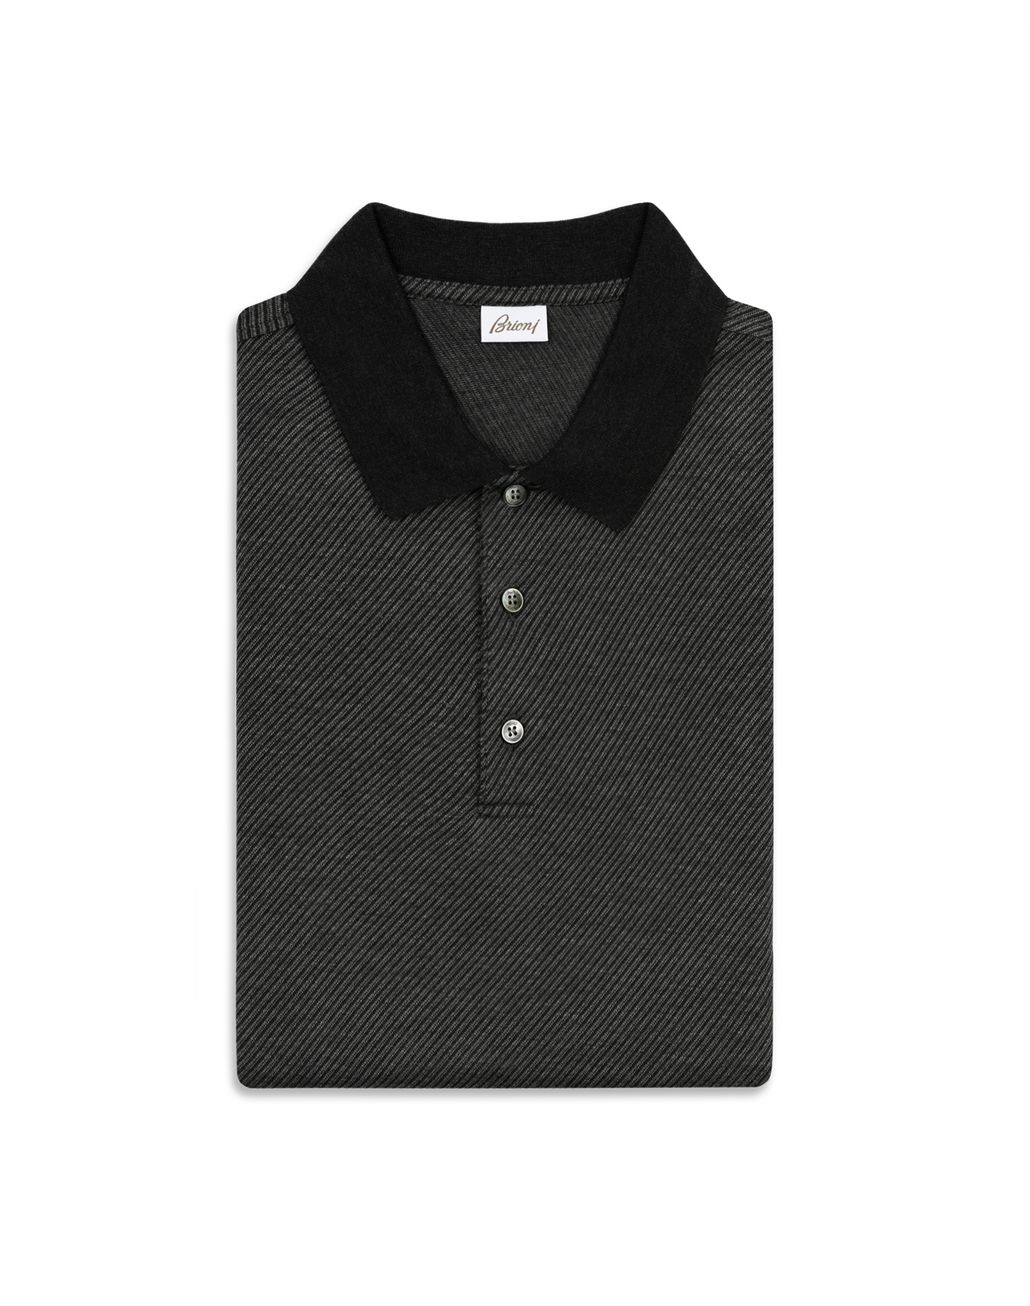 BRIONI Polo Jacquard Antracite T-Shirt & Polo [*** pickupInStoreShippingNotGuaranteed_info ***] e